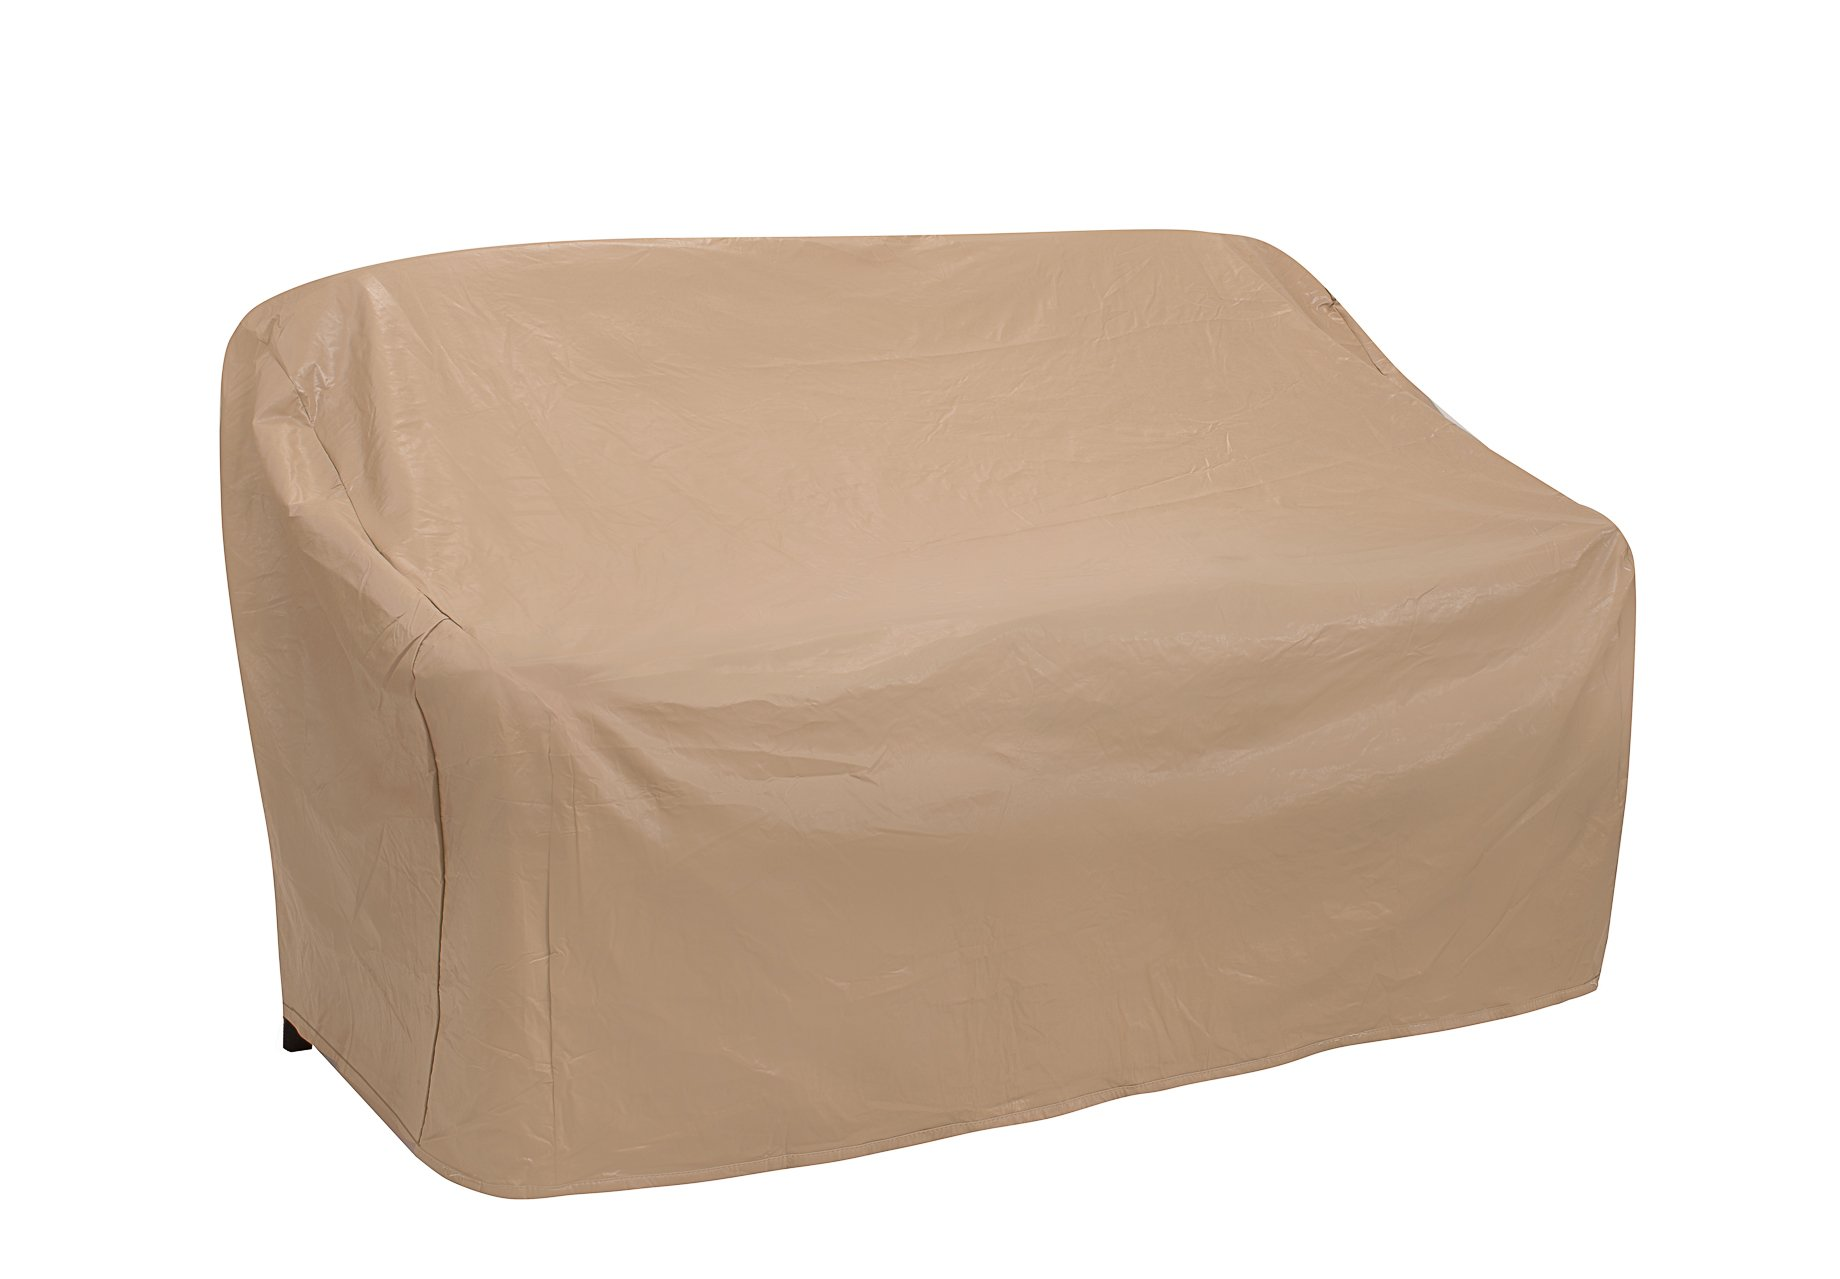 Protective Covers Weatherproof 2 Seat Wicker/Rattan Sofa Cover, X Large, Tan - 1122-TN by Protective Covers